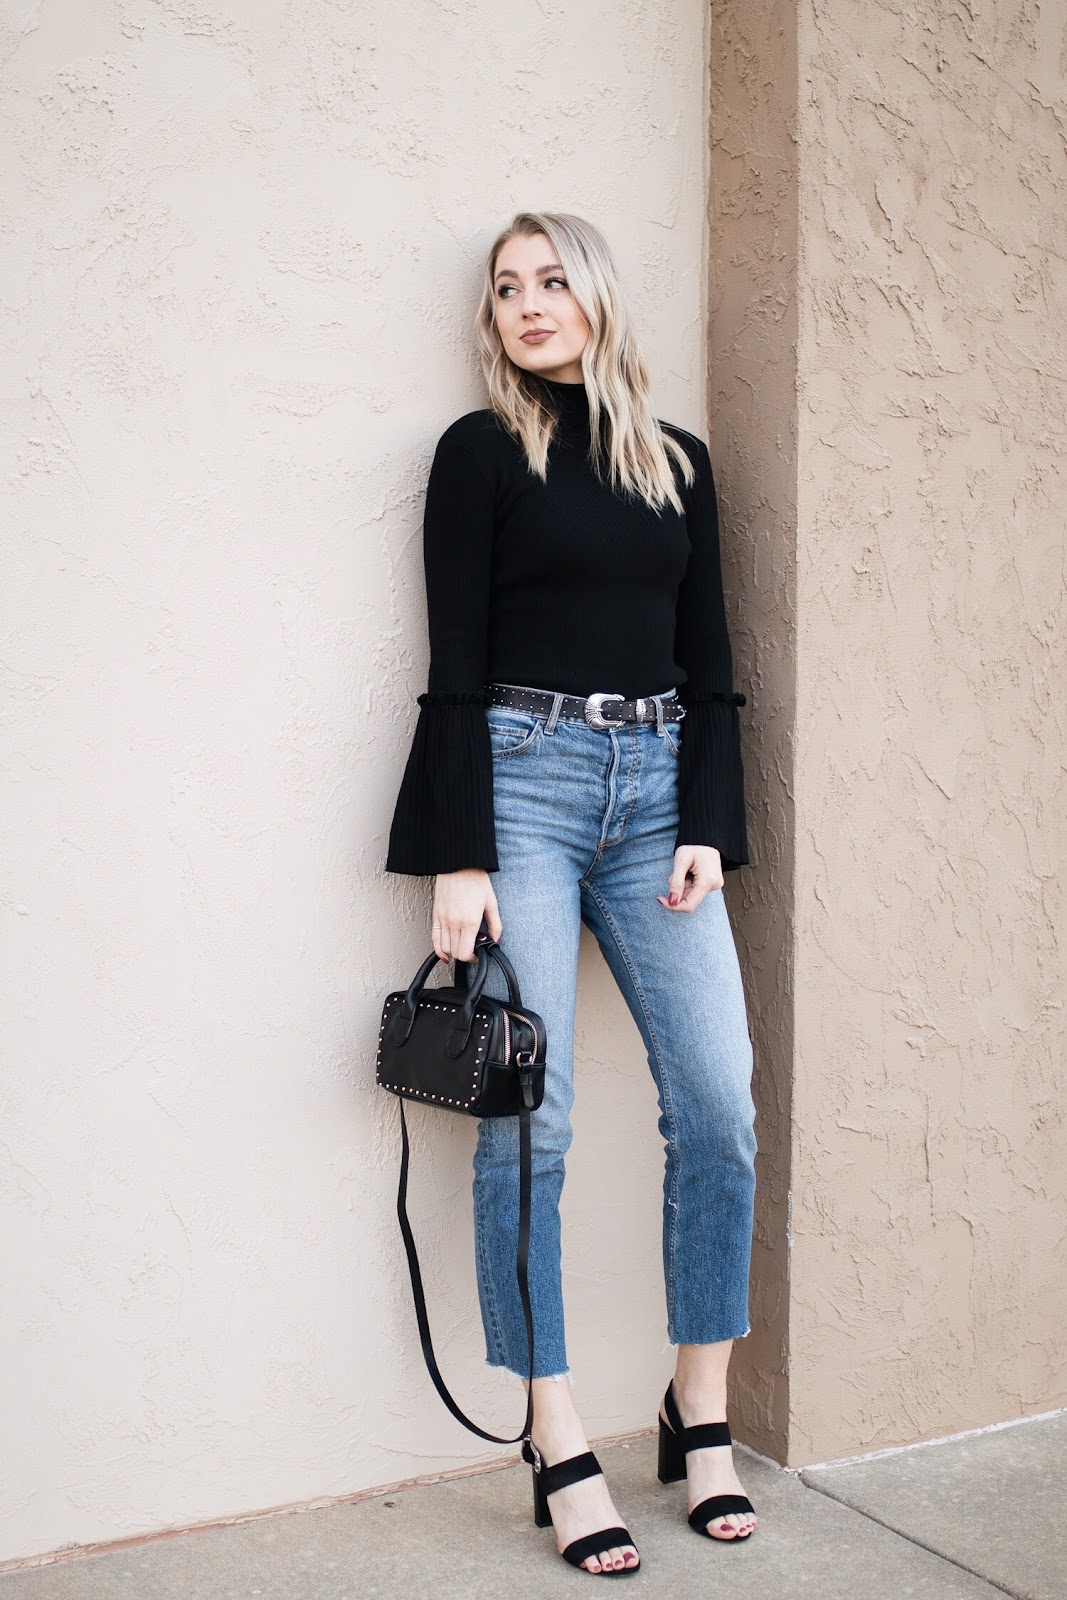 High-waisted girlfriend jeans